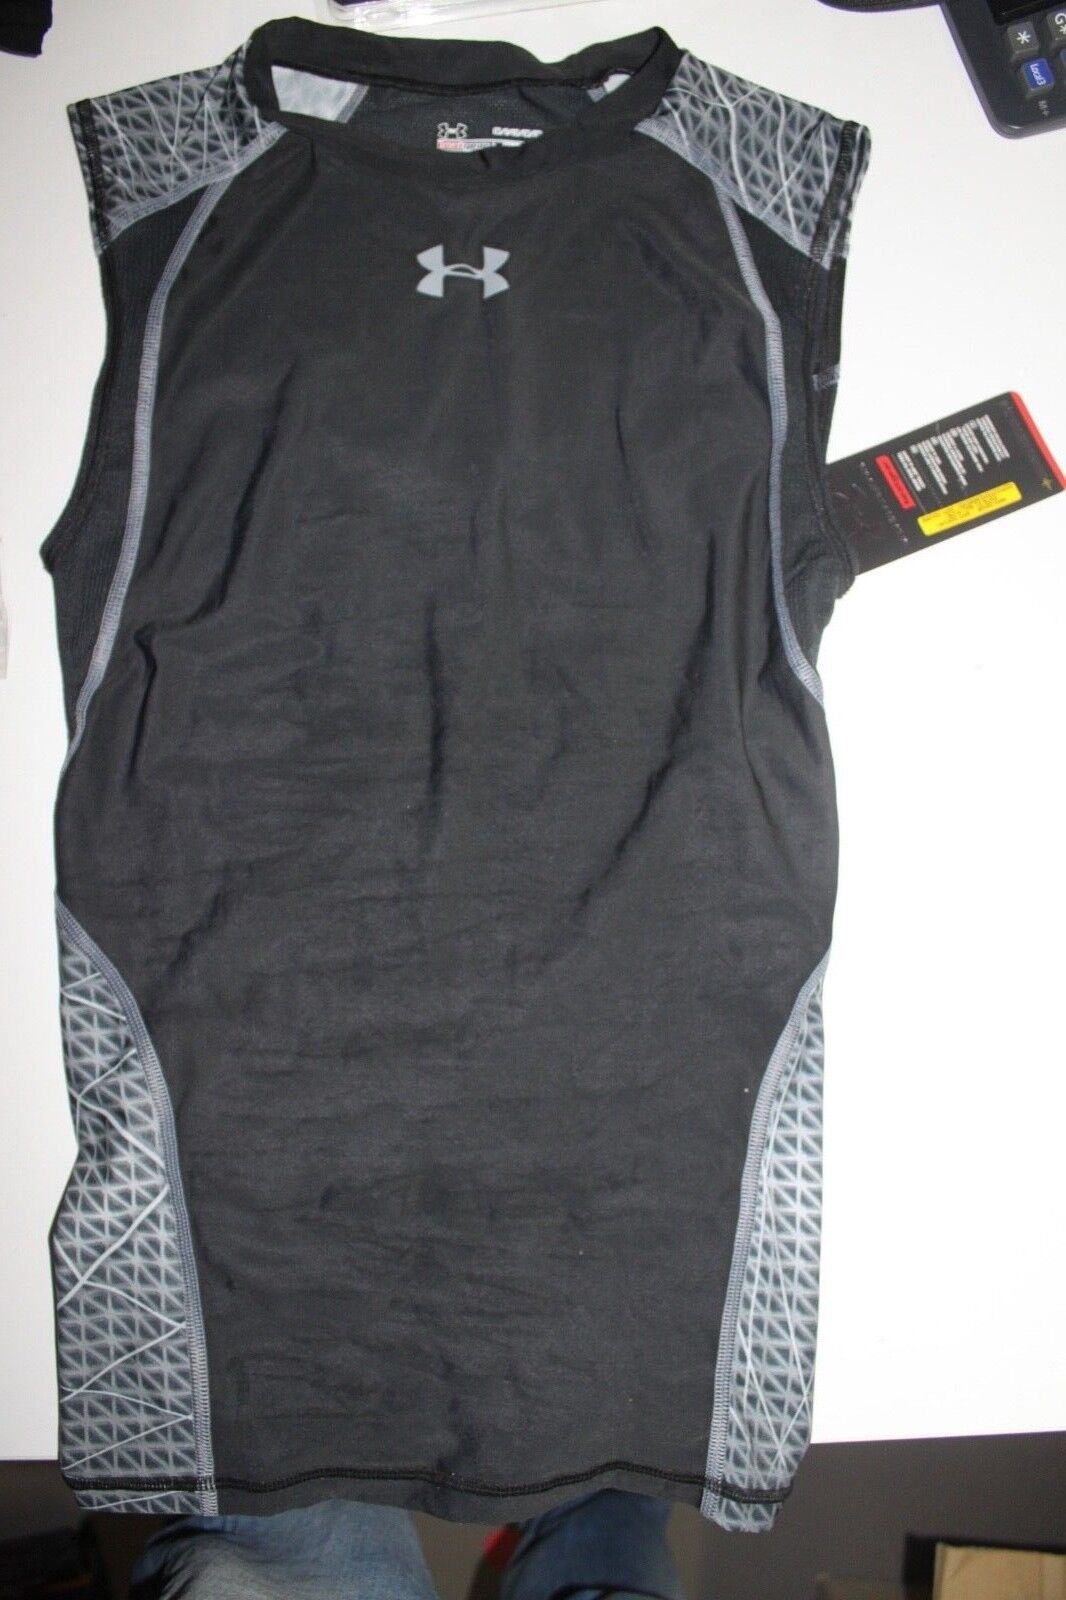 Under Armour Heatgear Shirt Size Size Shirt SM d93333